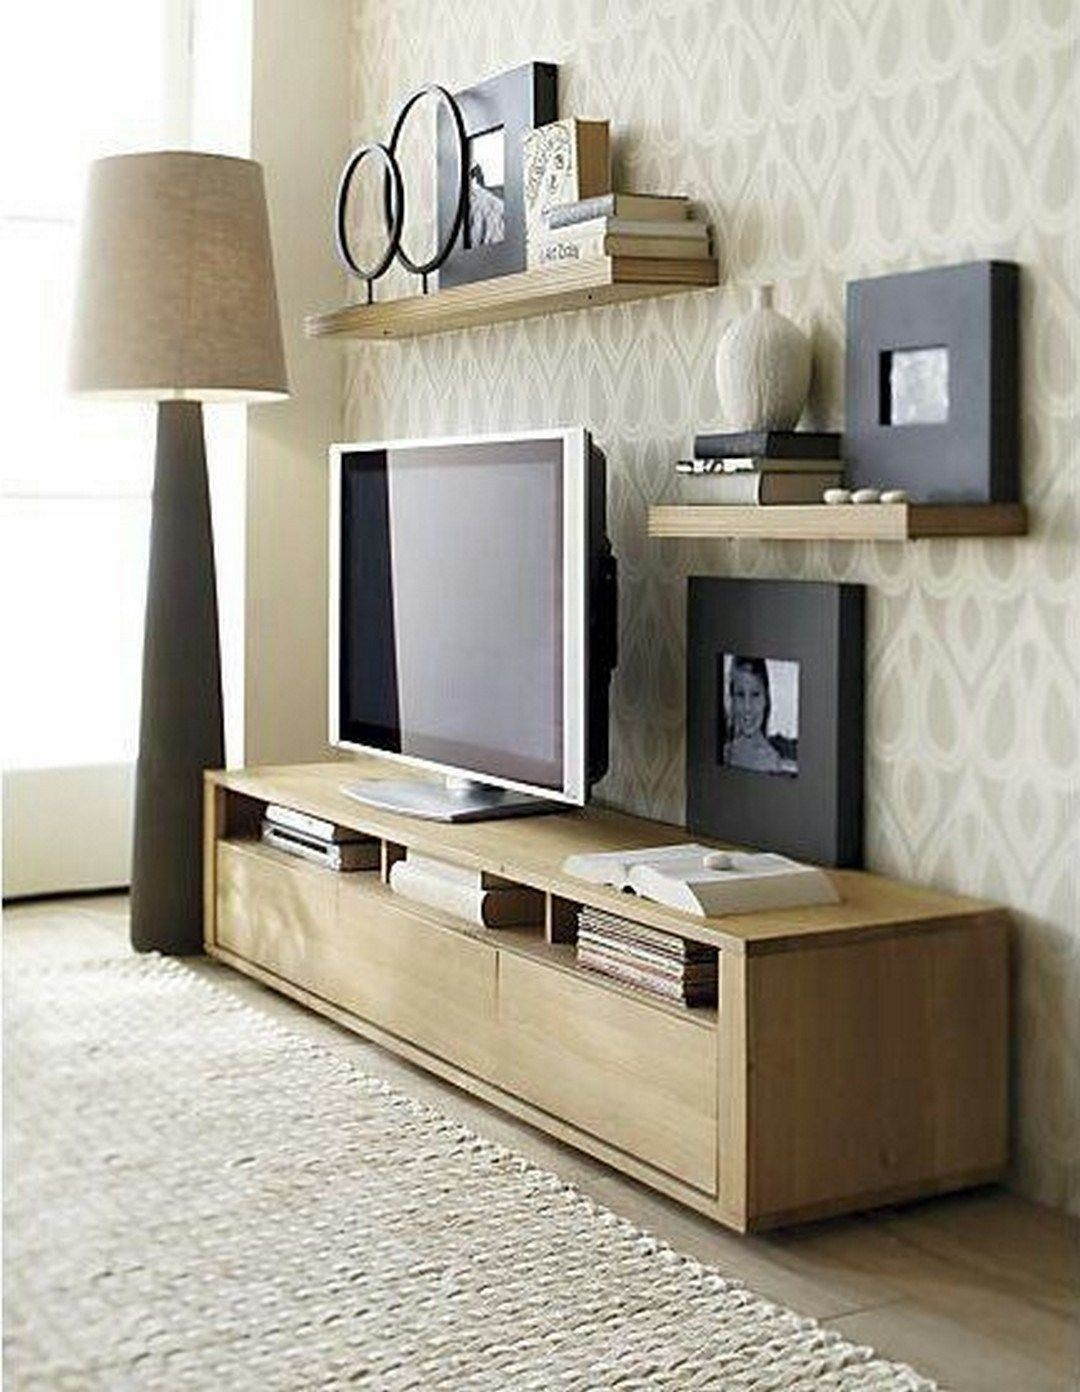 Superb Flat Screen Tv Wall Cabinet